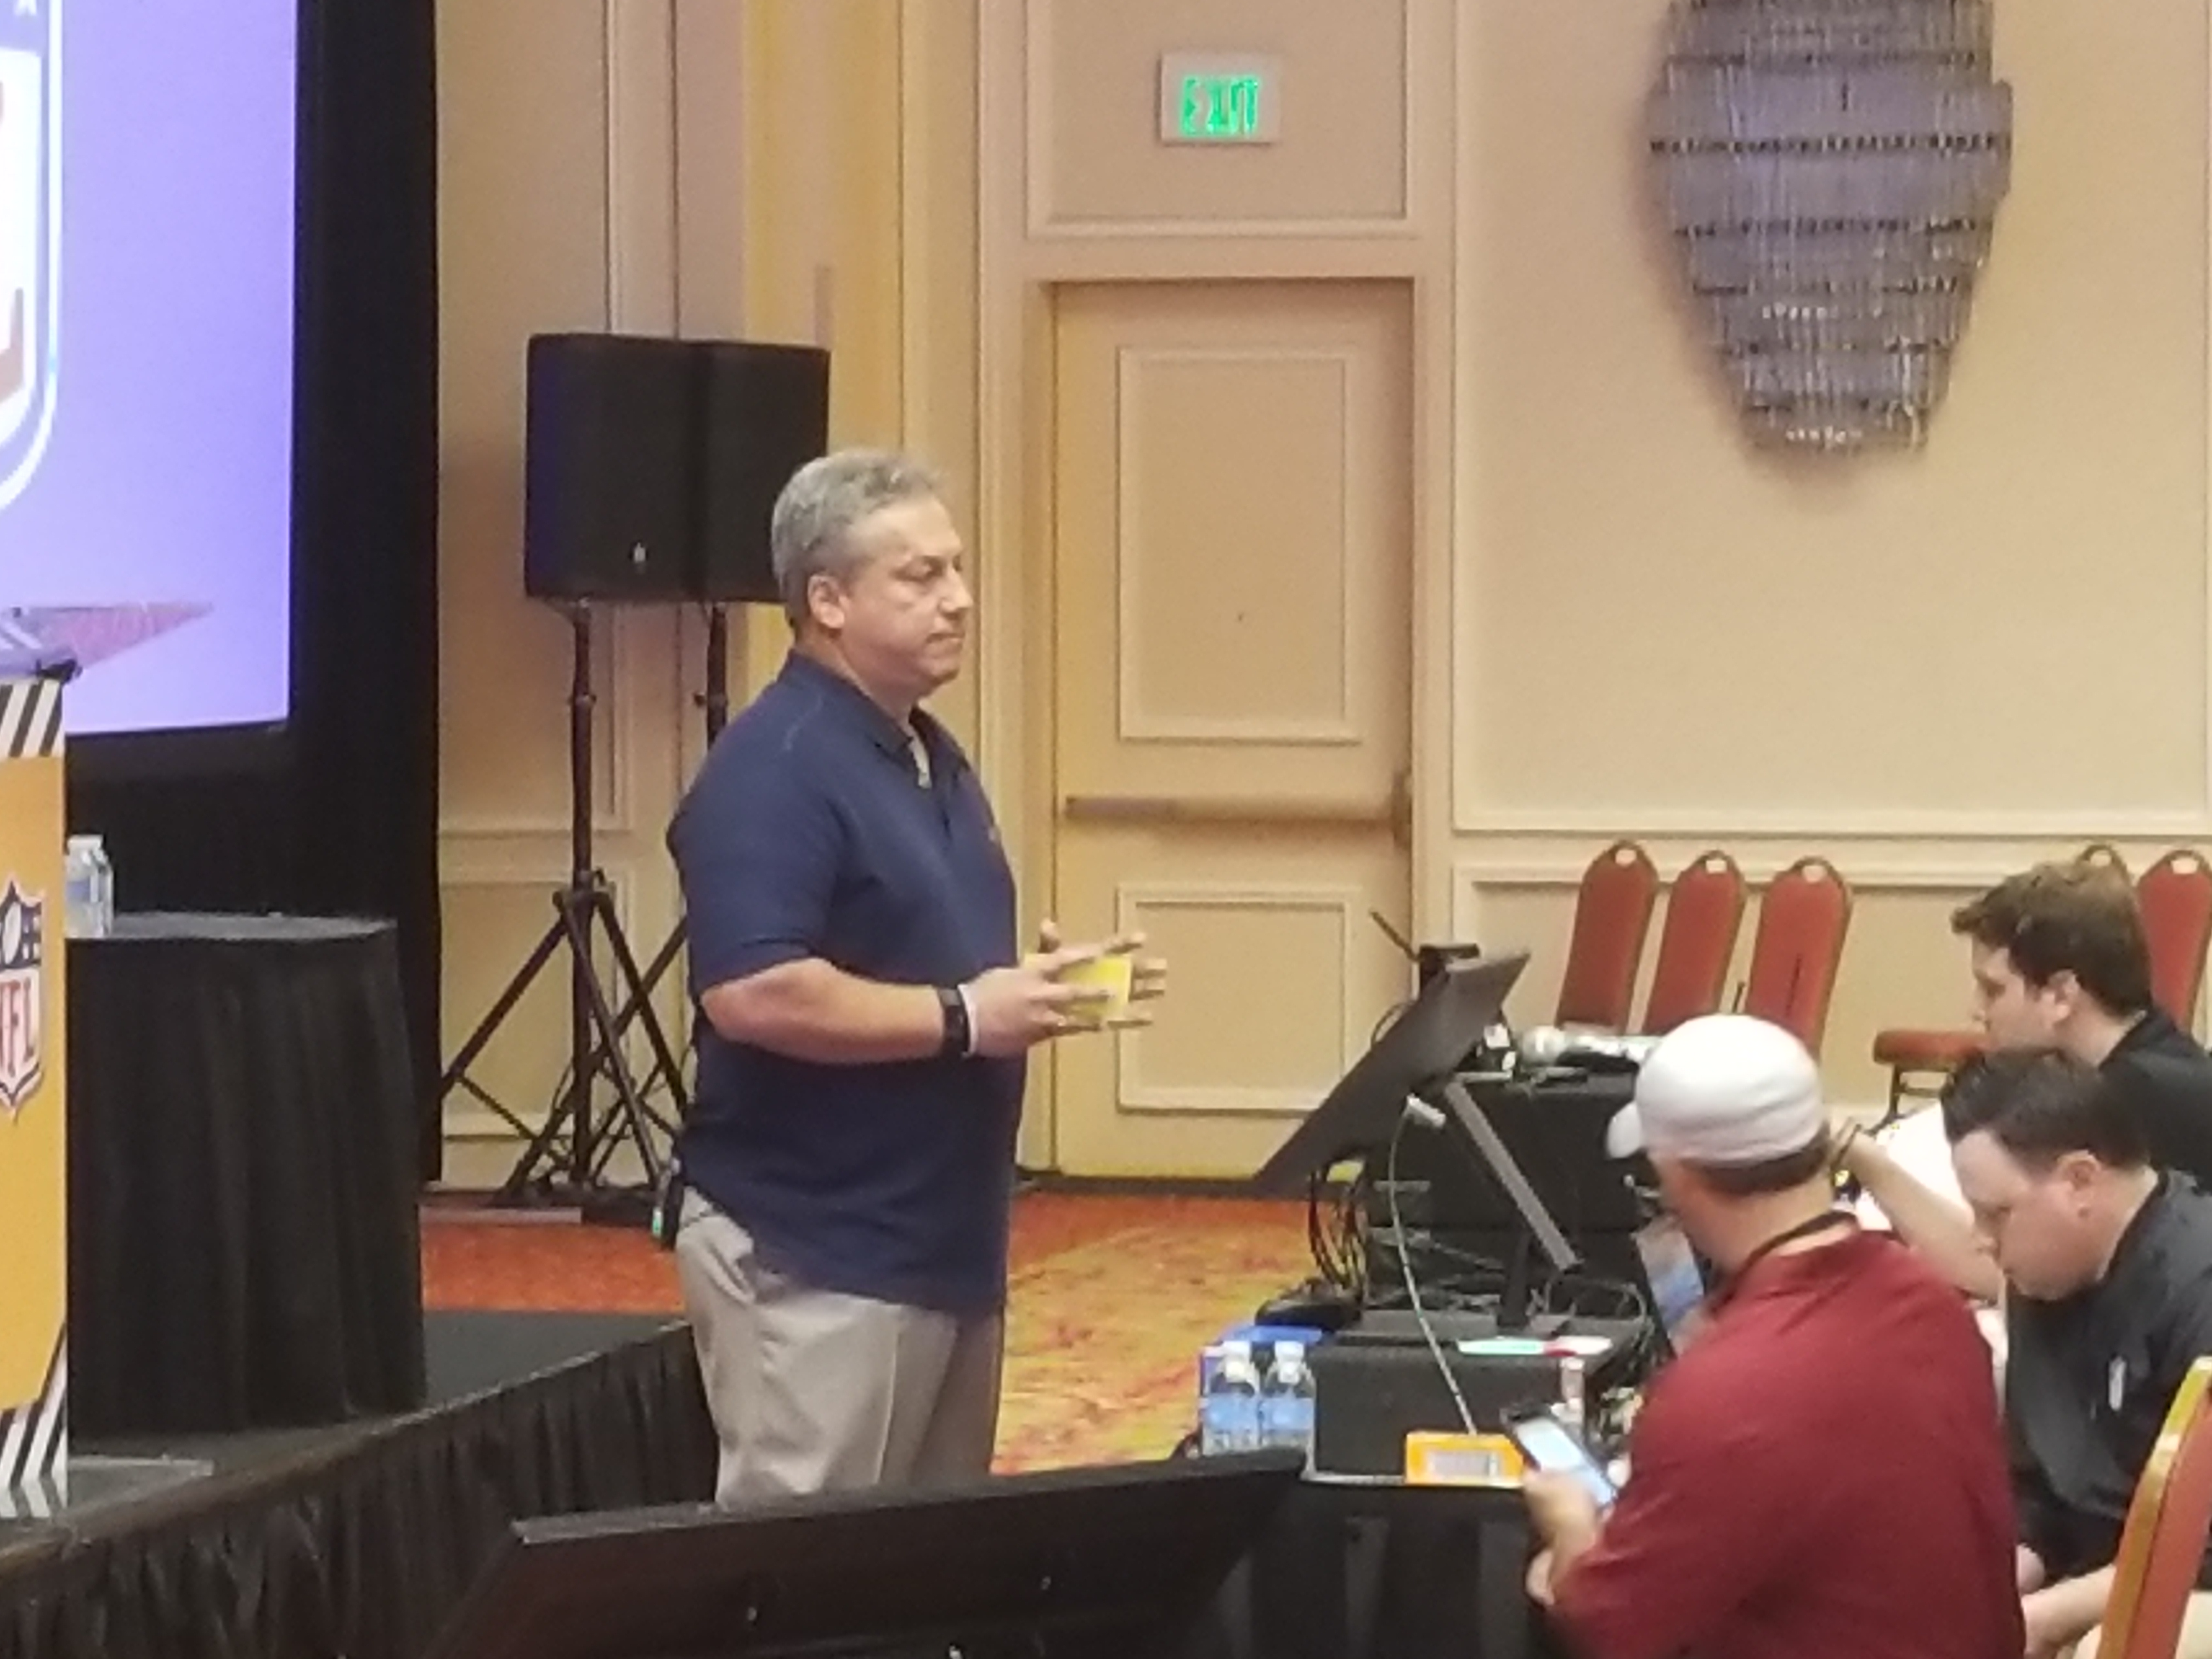 July 14, 2017 - DALLAS, TX - NFL Senior Vice President of Officiating Al Riveron addressing the NFL officials at the 2017 NFL Officiating Clinic. (Photo by: Locker-Report.com)